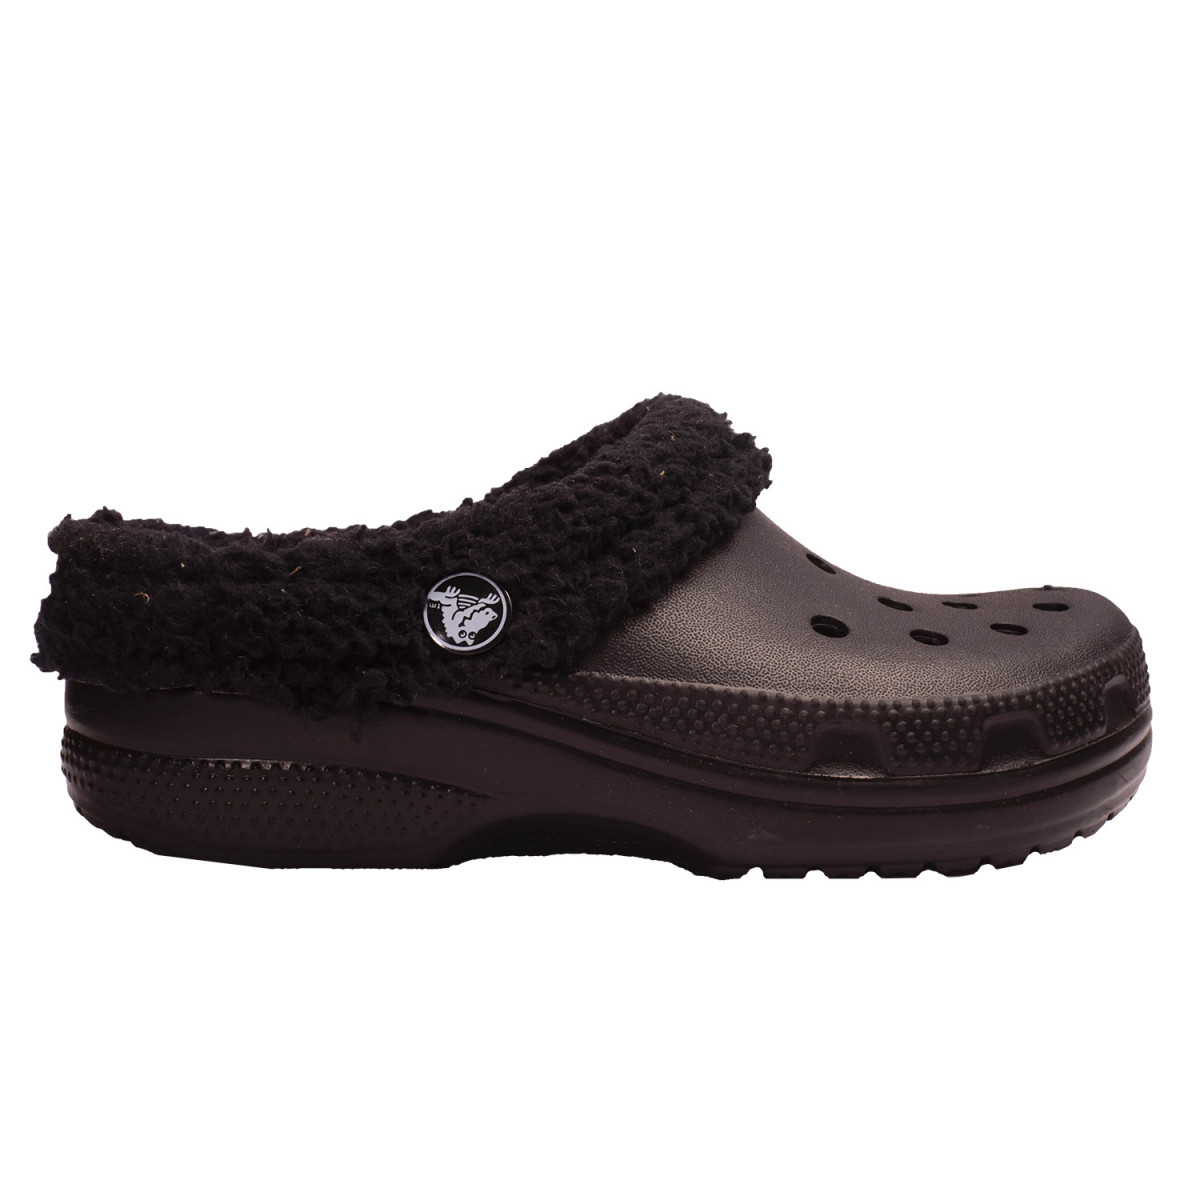 Zuecos Crocs Mammoth Kids